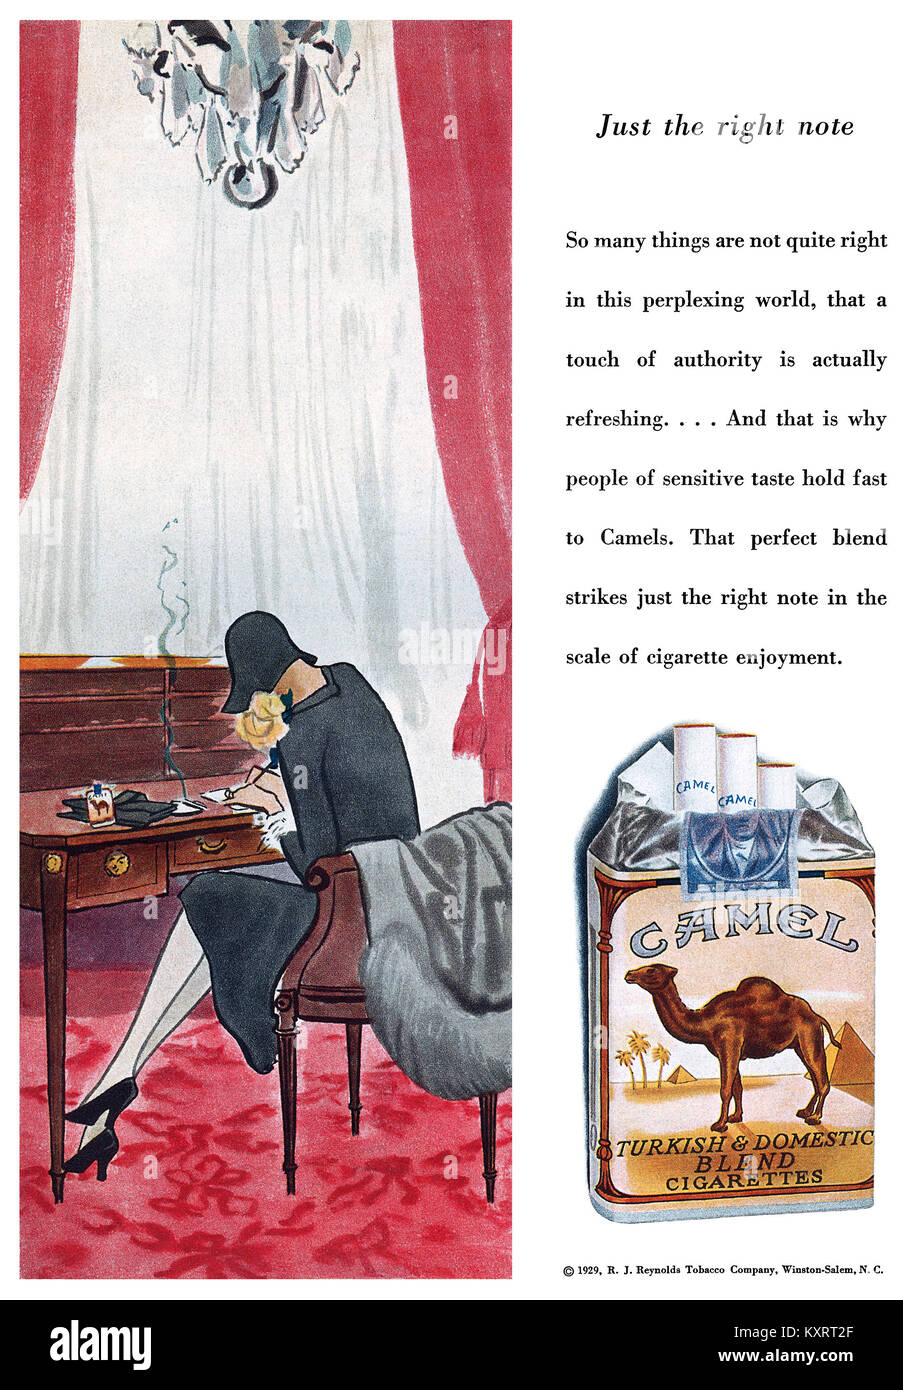 1929 U.S. advertisement for Camel cigarettes. Stock Photo